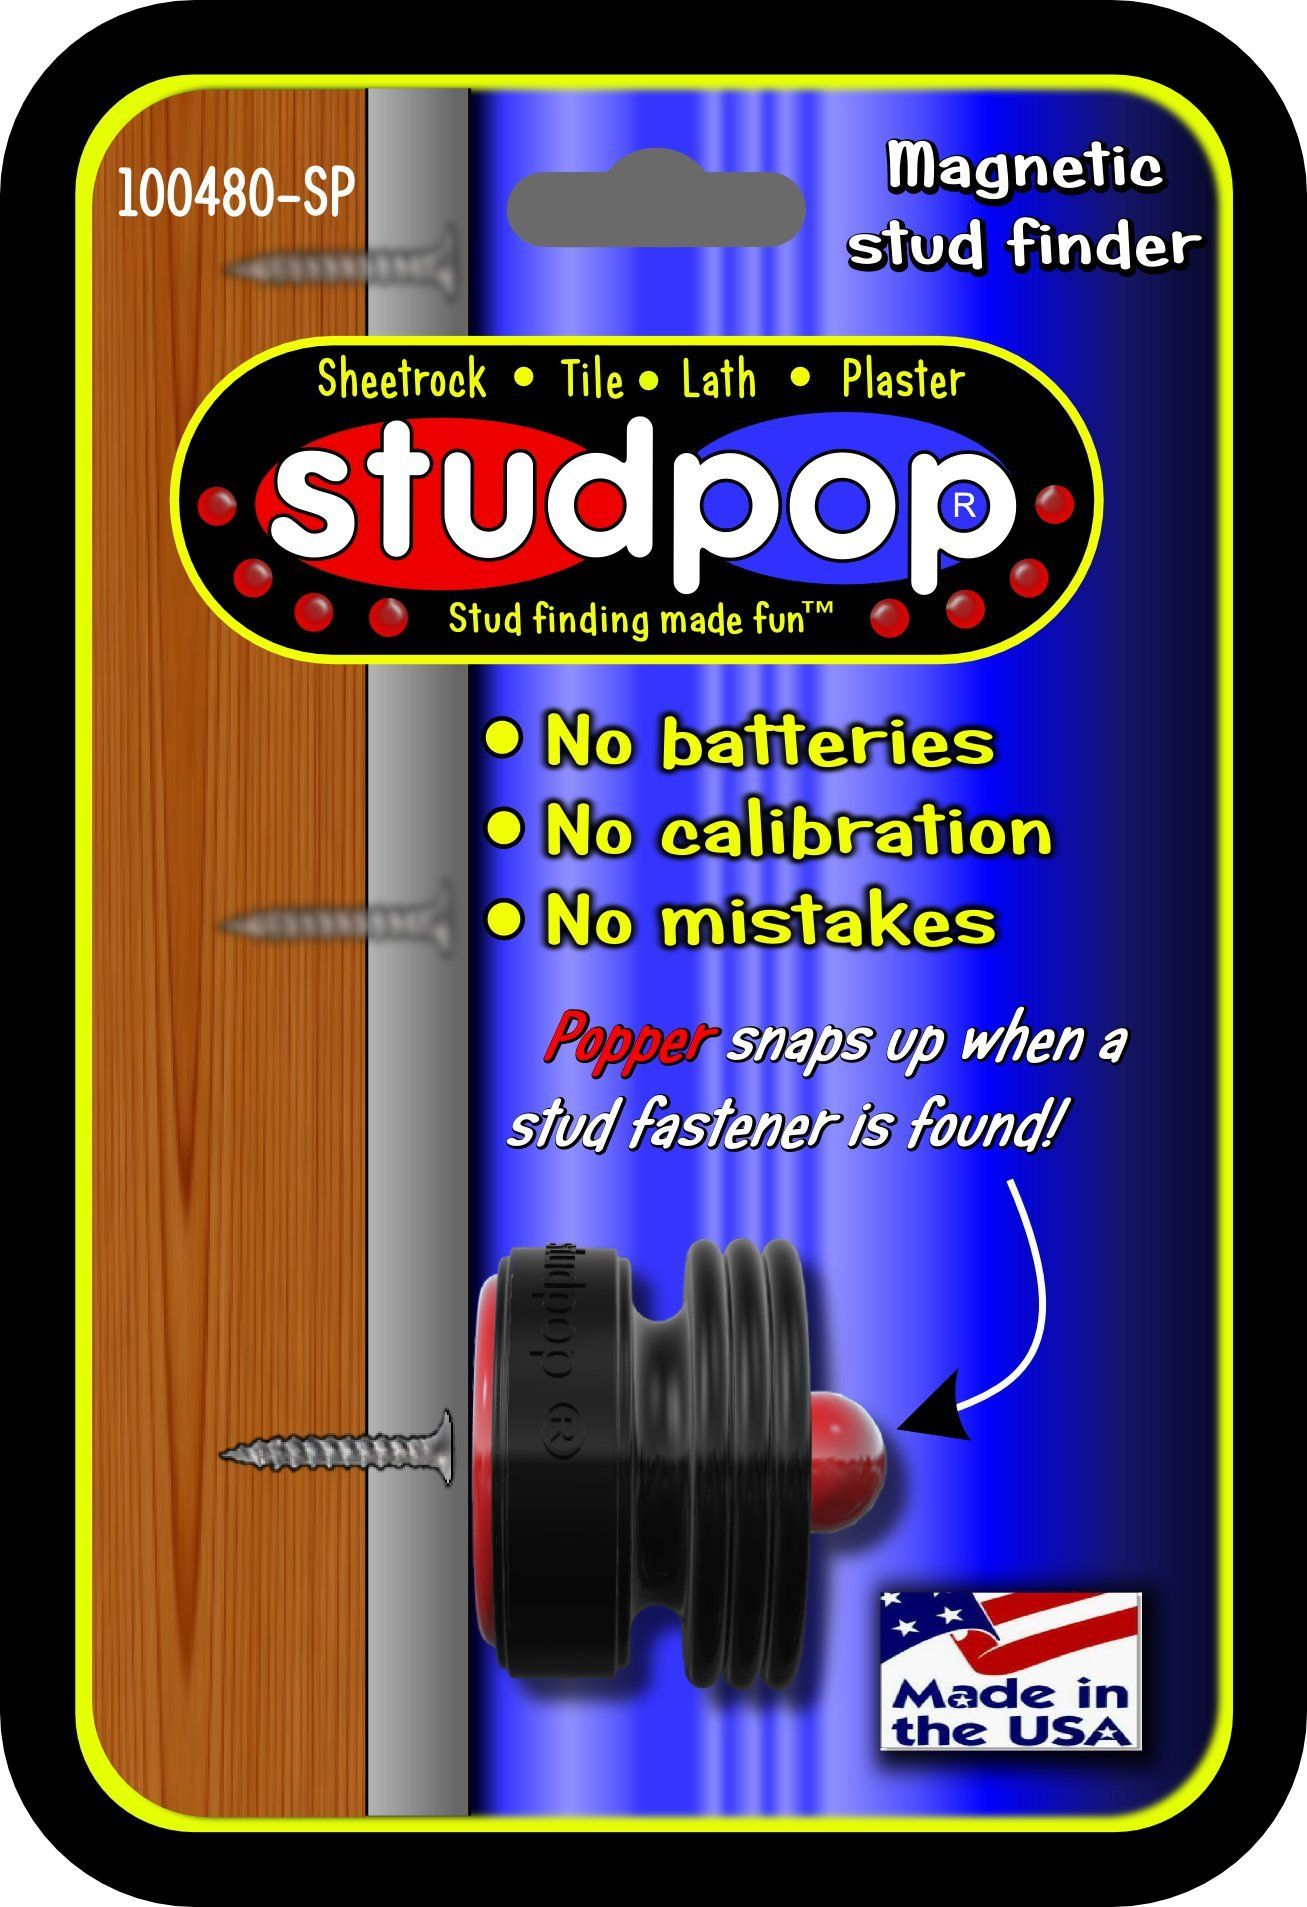 Studpop Magnetic Stud Finder Unique Popper Indicates When It Finds The Metal Fasteners In Studs Invented By A Contractor Work Stud Finder Stud Finders Stud